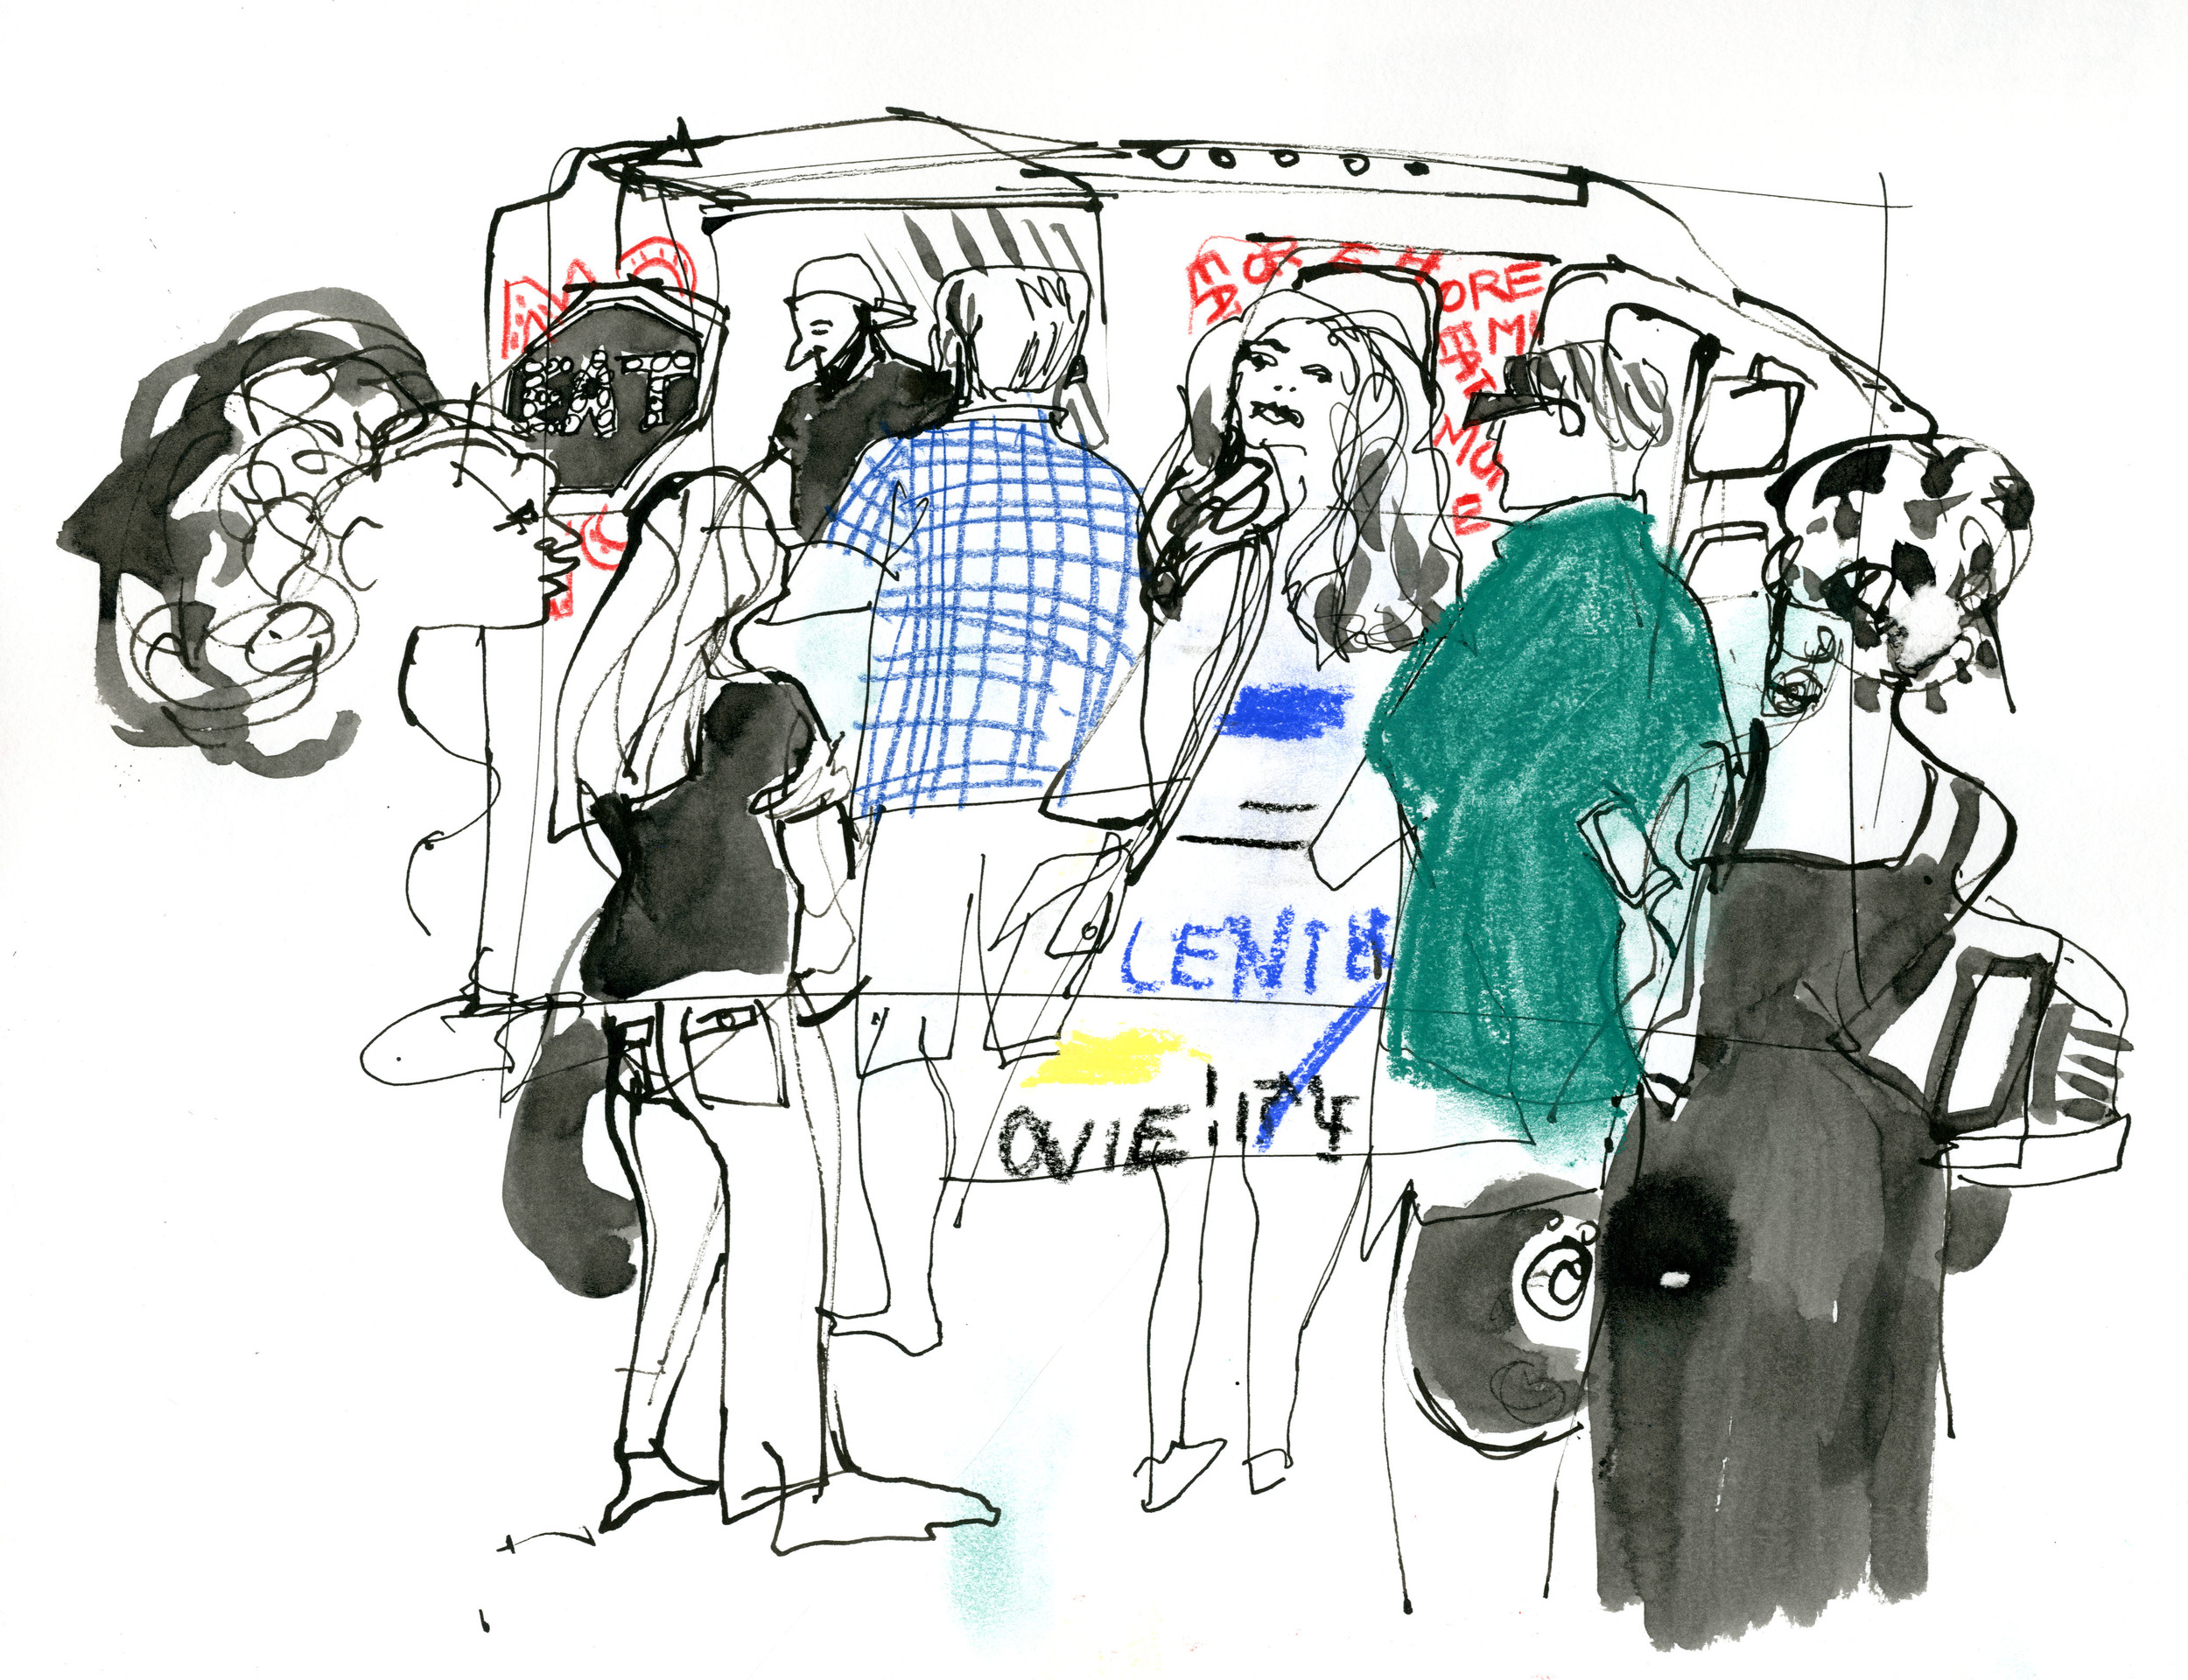 The Eat Morris food truck on Water Street, DUMBO. © Carly Larsson 2014